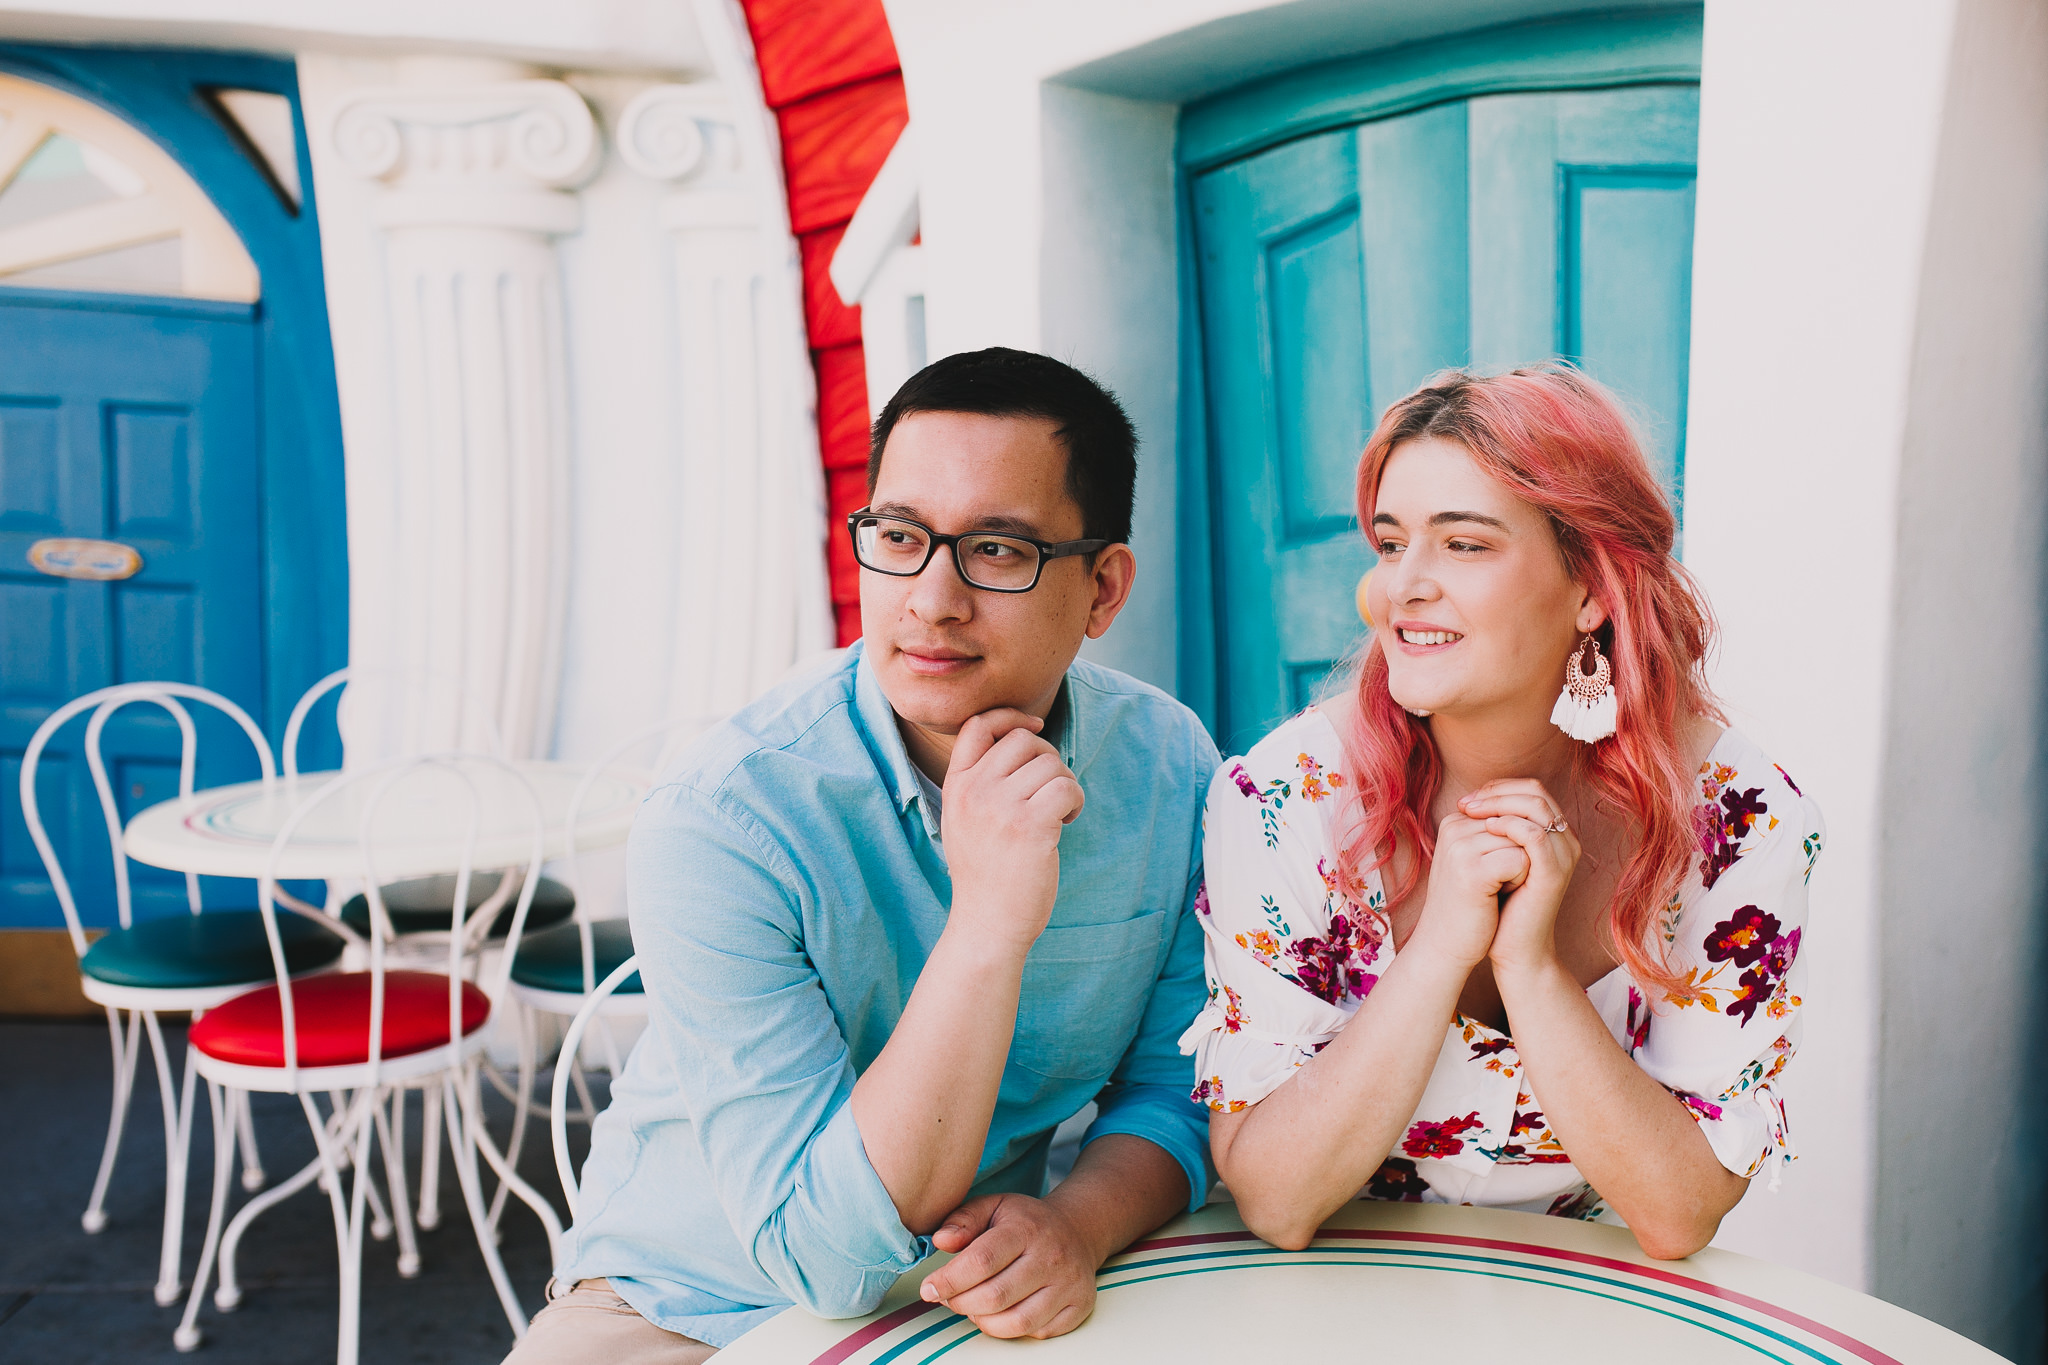 Archer Inspired Photography Disneyland Engagement Wedding Session Southern California Kayla and Kevin Lifestyle Documentary-80.jpg